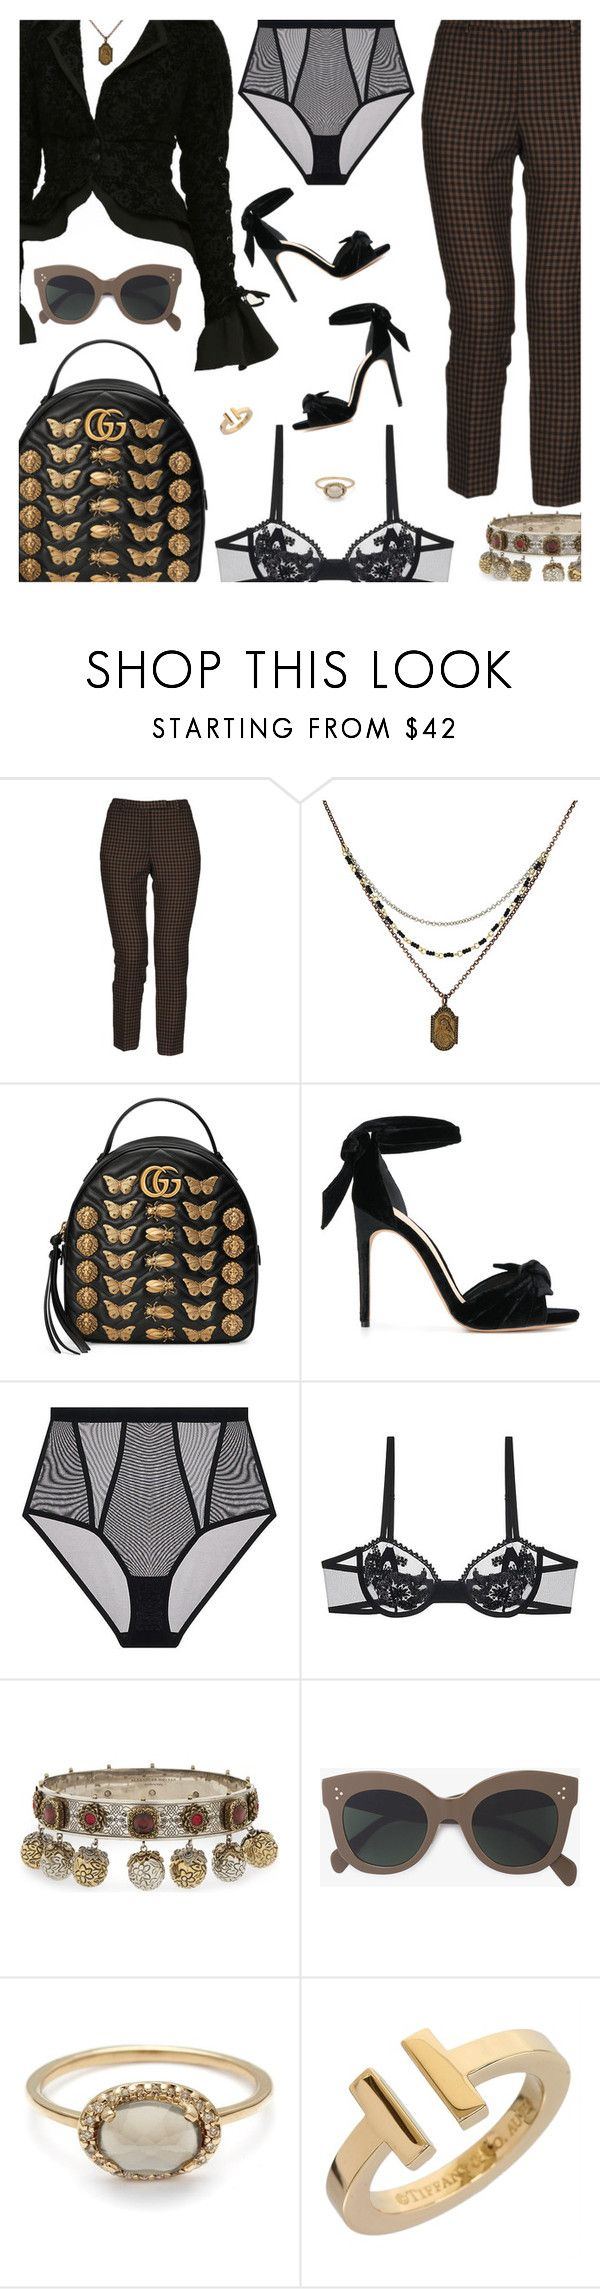 """""""Untitled #6366"""" by amberelb ❤ liked on Polyvore featuring QL2, 1928, Gucci, Alexandre Birman, Alexander McQueen, CÉLINE and Tiffany & Co."""